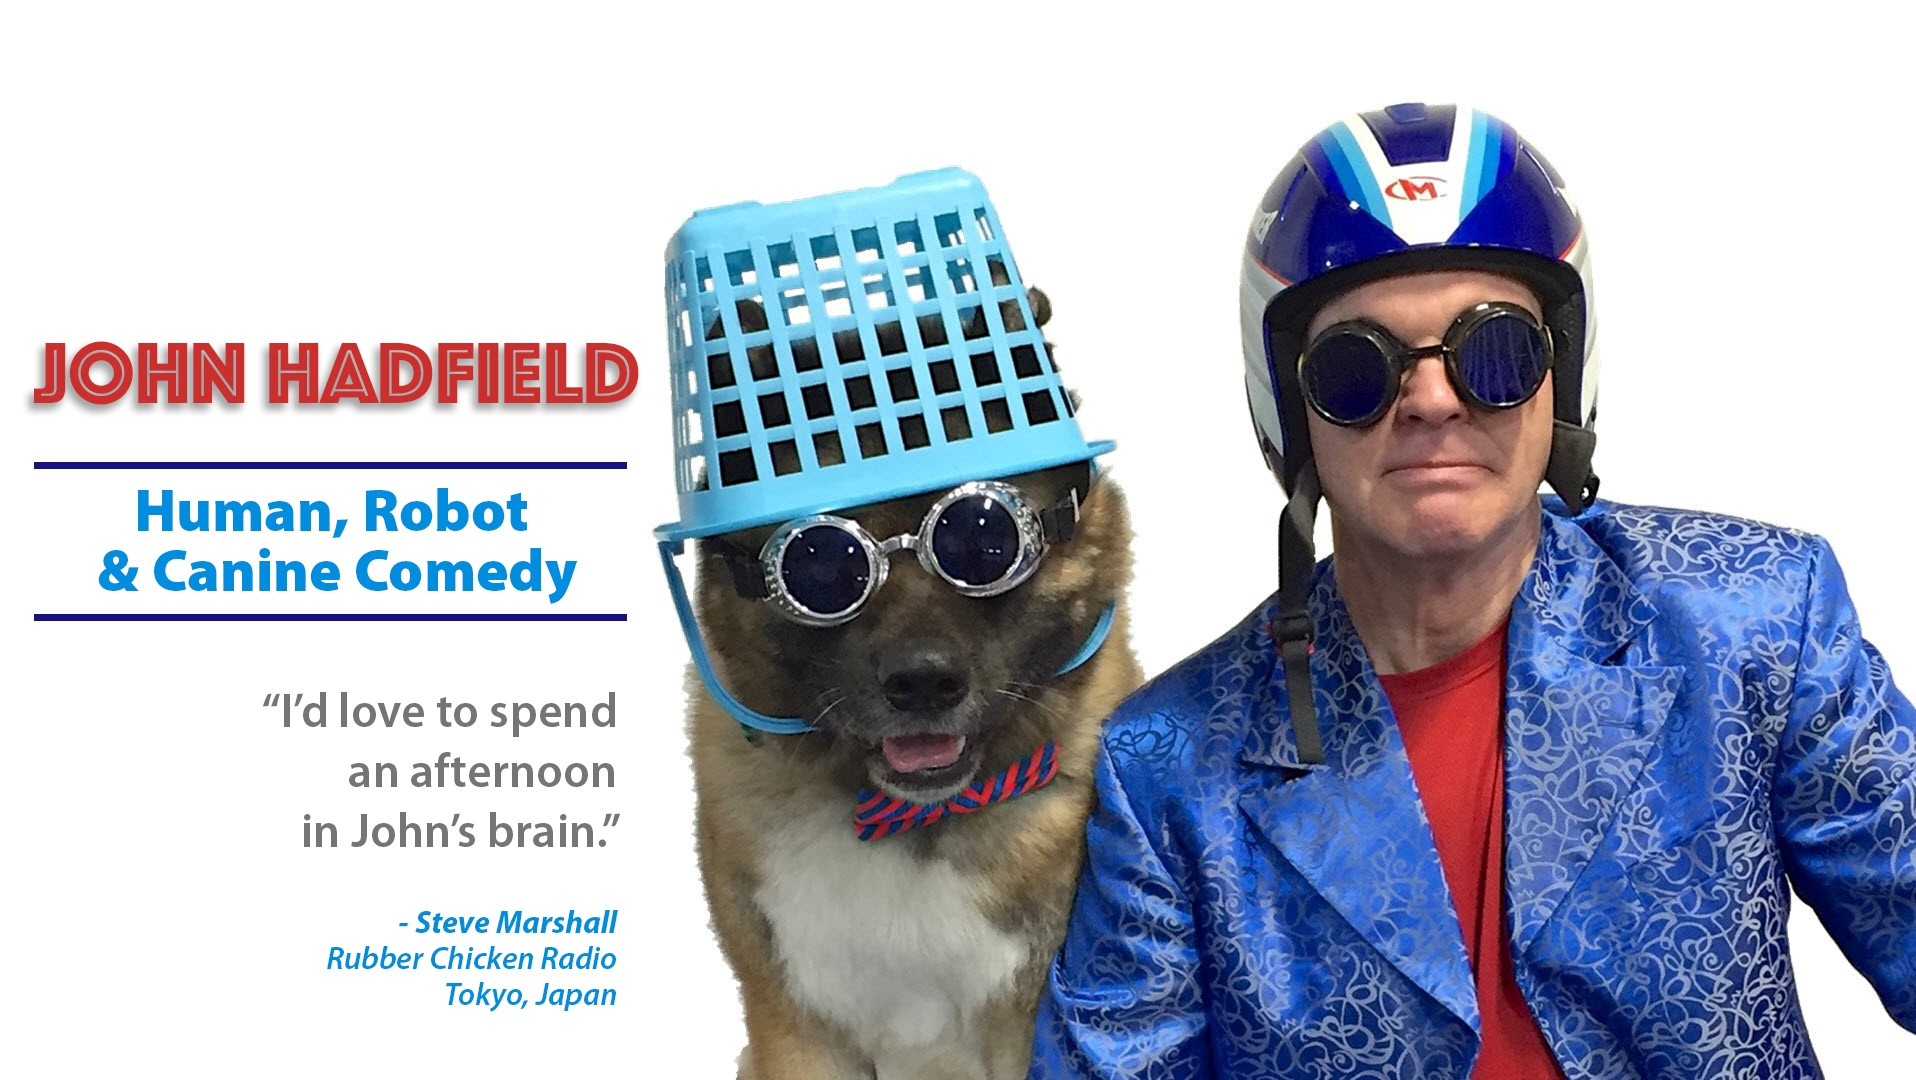 John Hadfield - Human, Robot and Canine Comedy